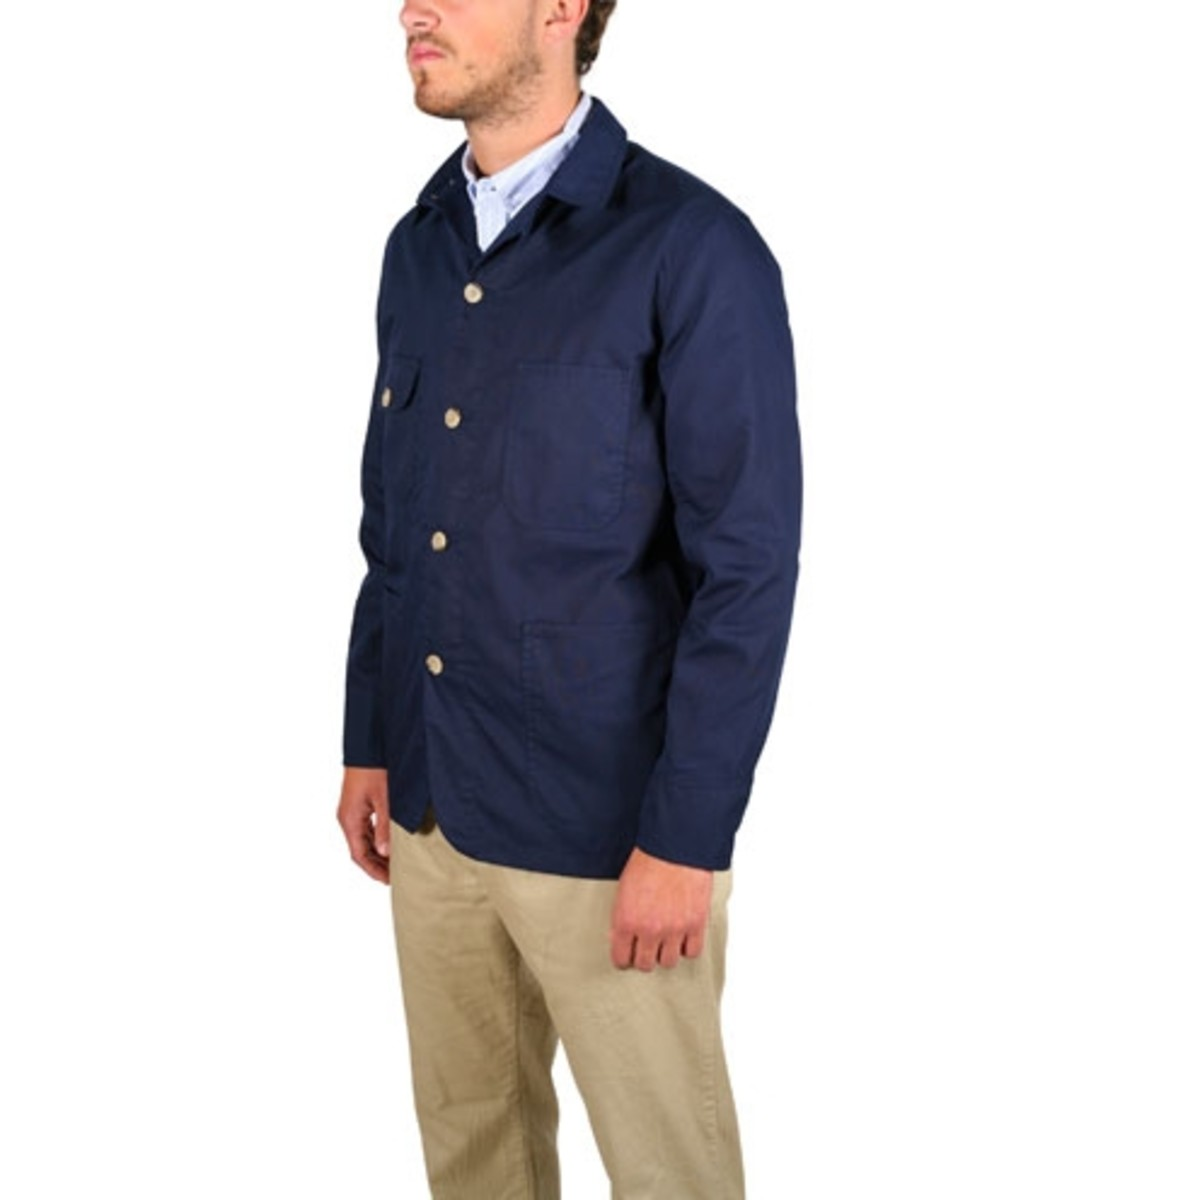 Penfield SS2011 Jackets 53